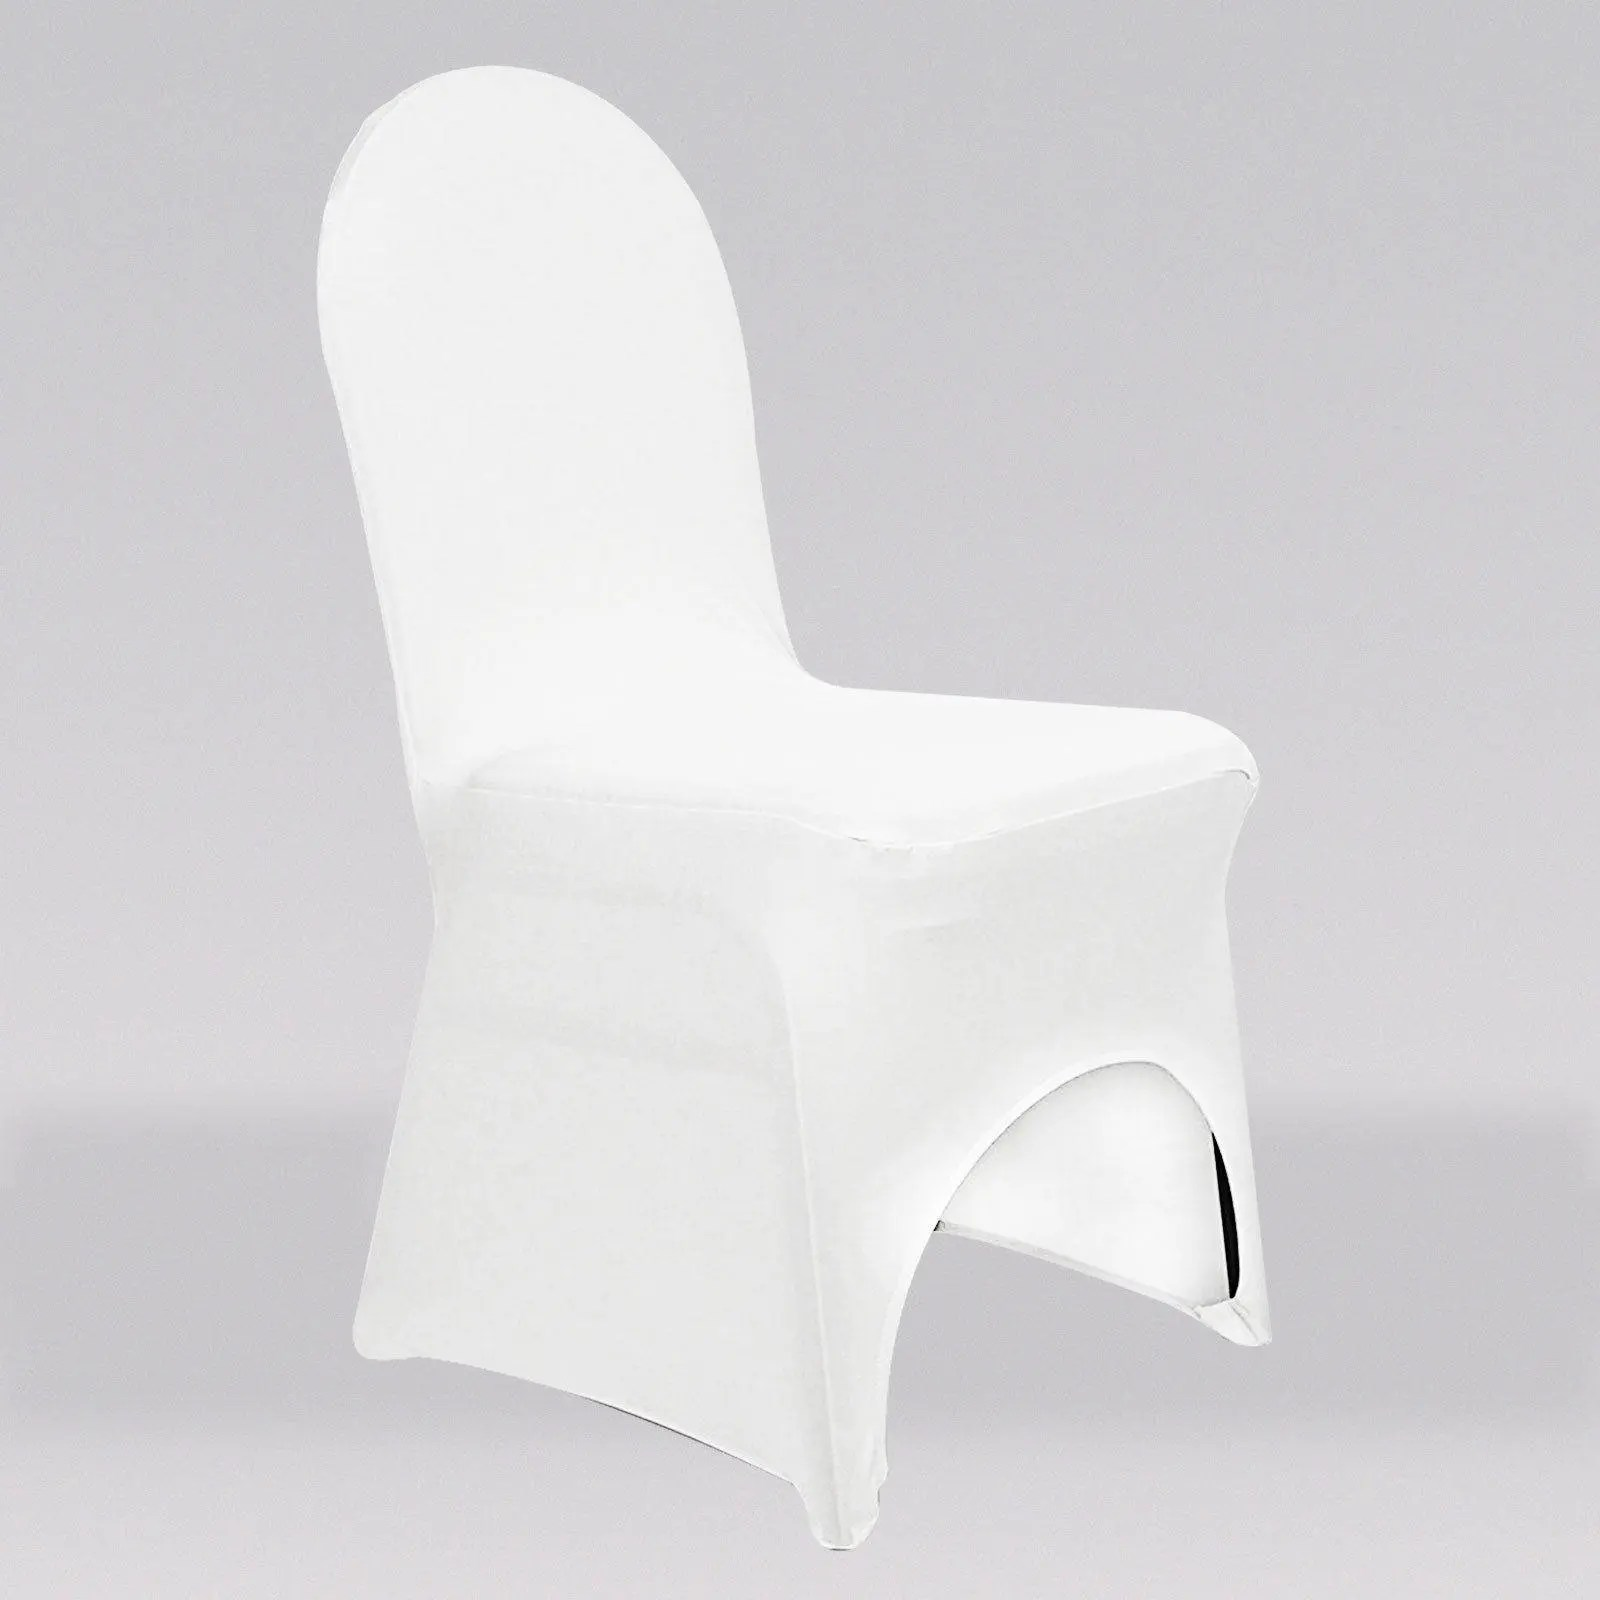 lycra chair covers nz computer wheels wedding etsy white spandex birthday banquet events party decor